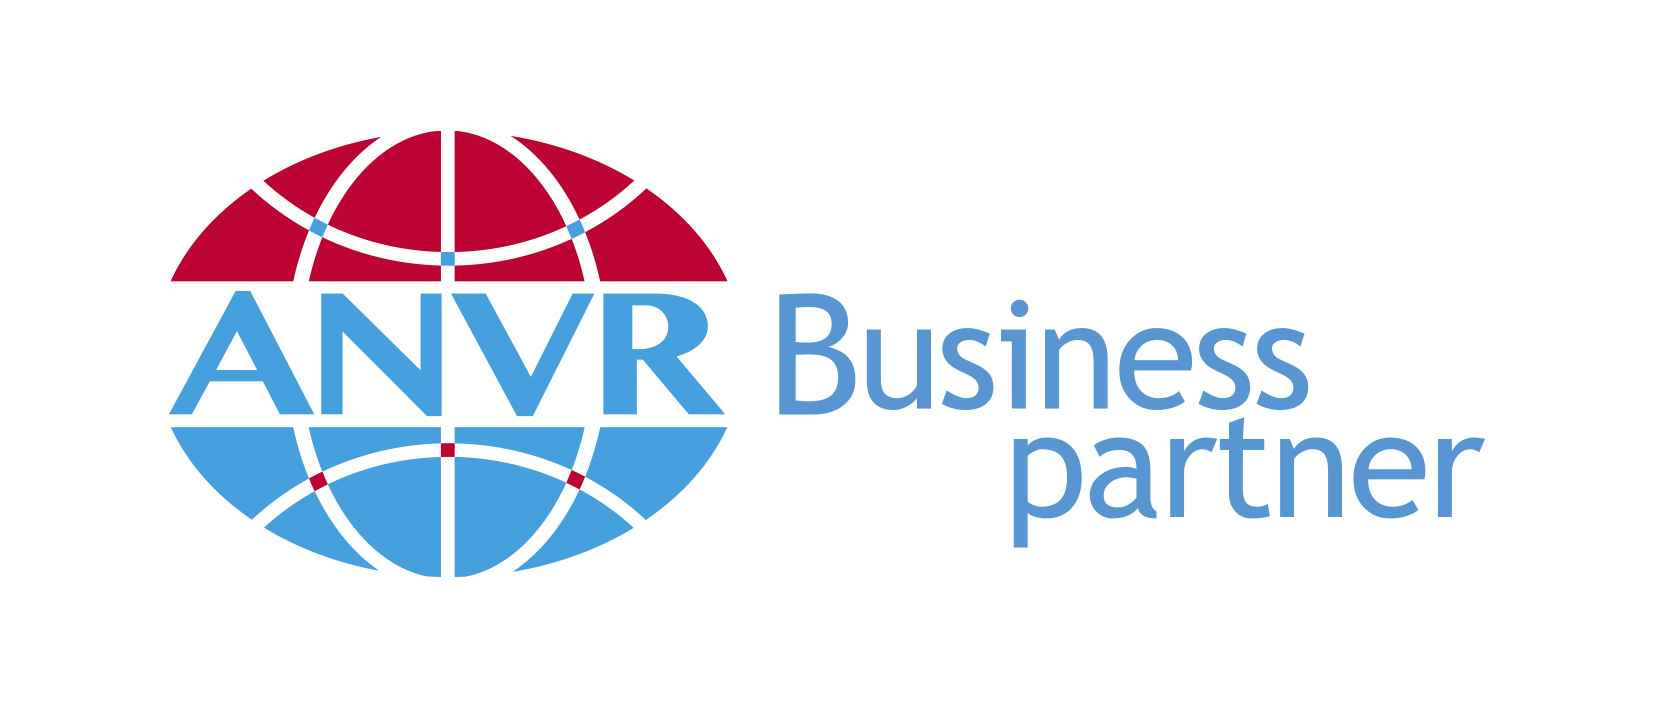 ANVR Business Partner Online Marketing